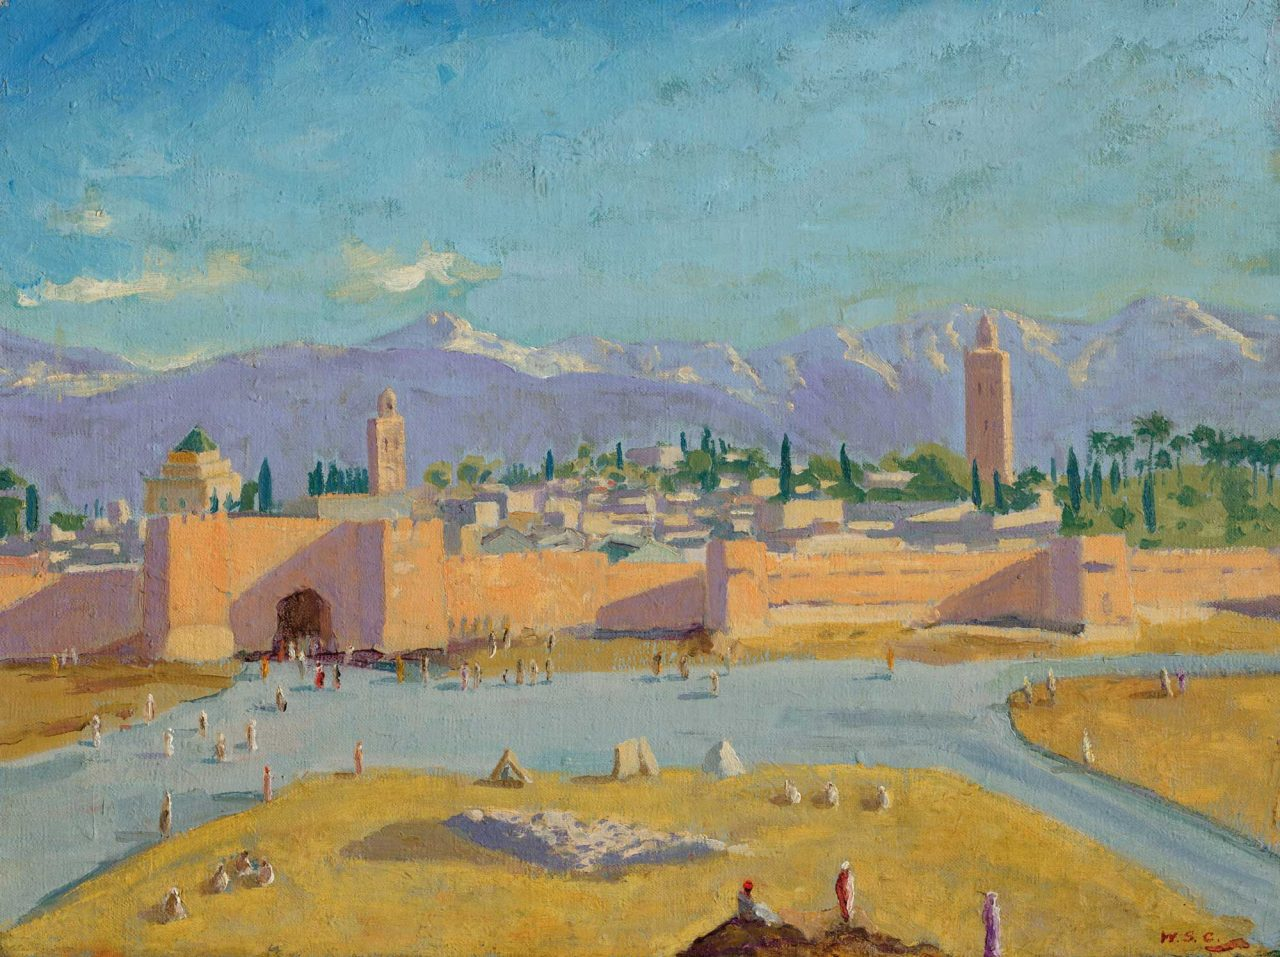 https://www.artsandcollections.com/wp-content/uploads/2021/04/sir_winston_churchill_om_ra_tower_of_the_koutoubia_mosque-1280x957.jpg